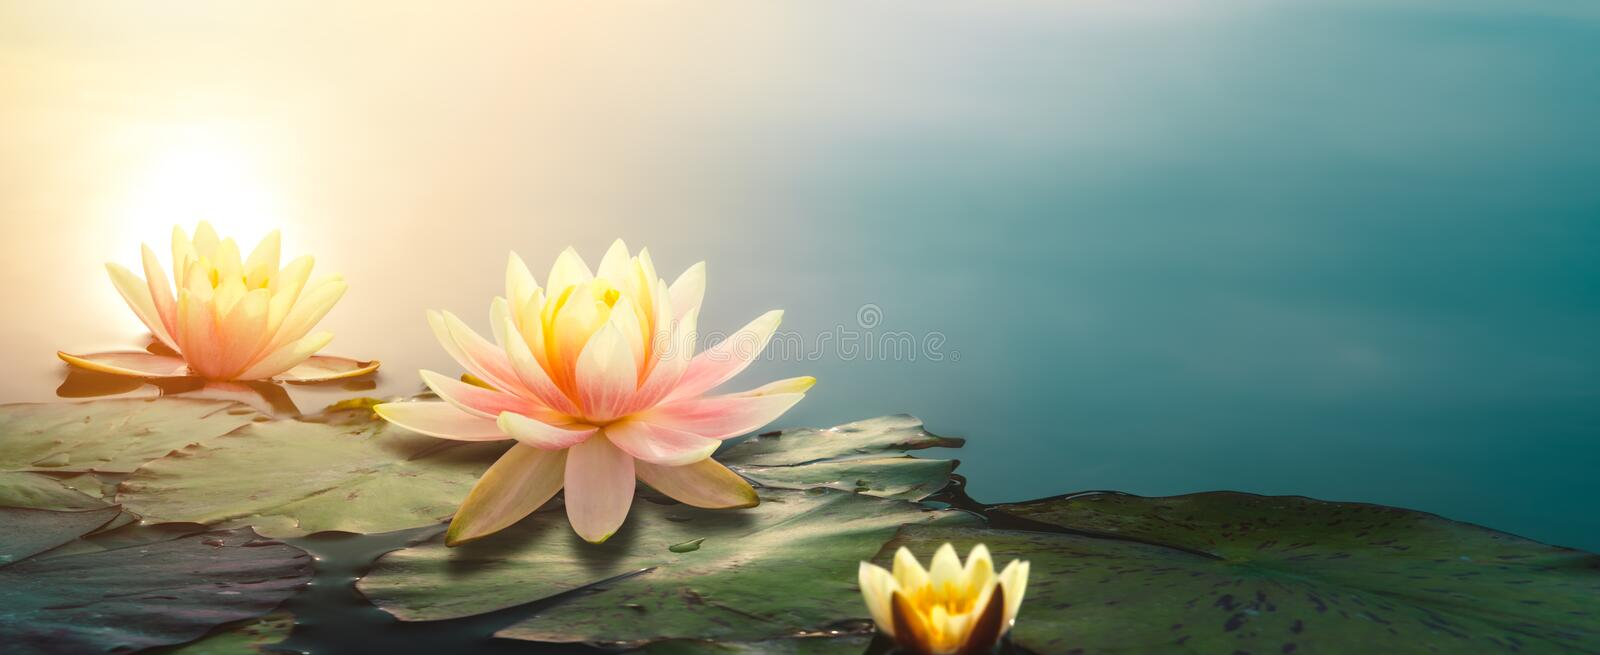 Lotus flower in pond royalty free stock image